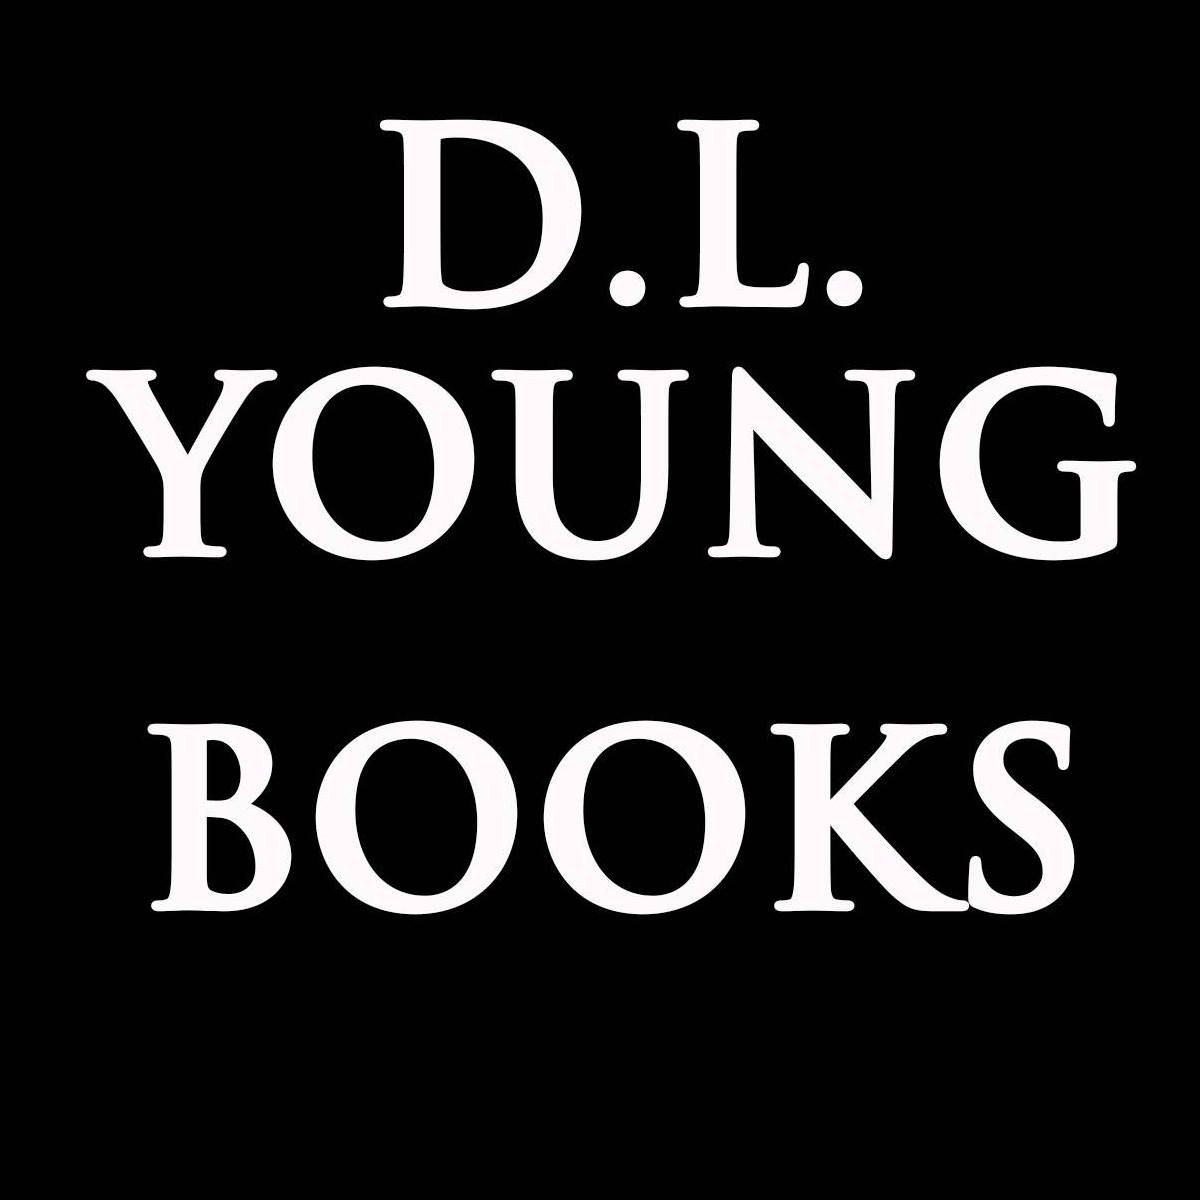 D.L. Young Books